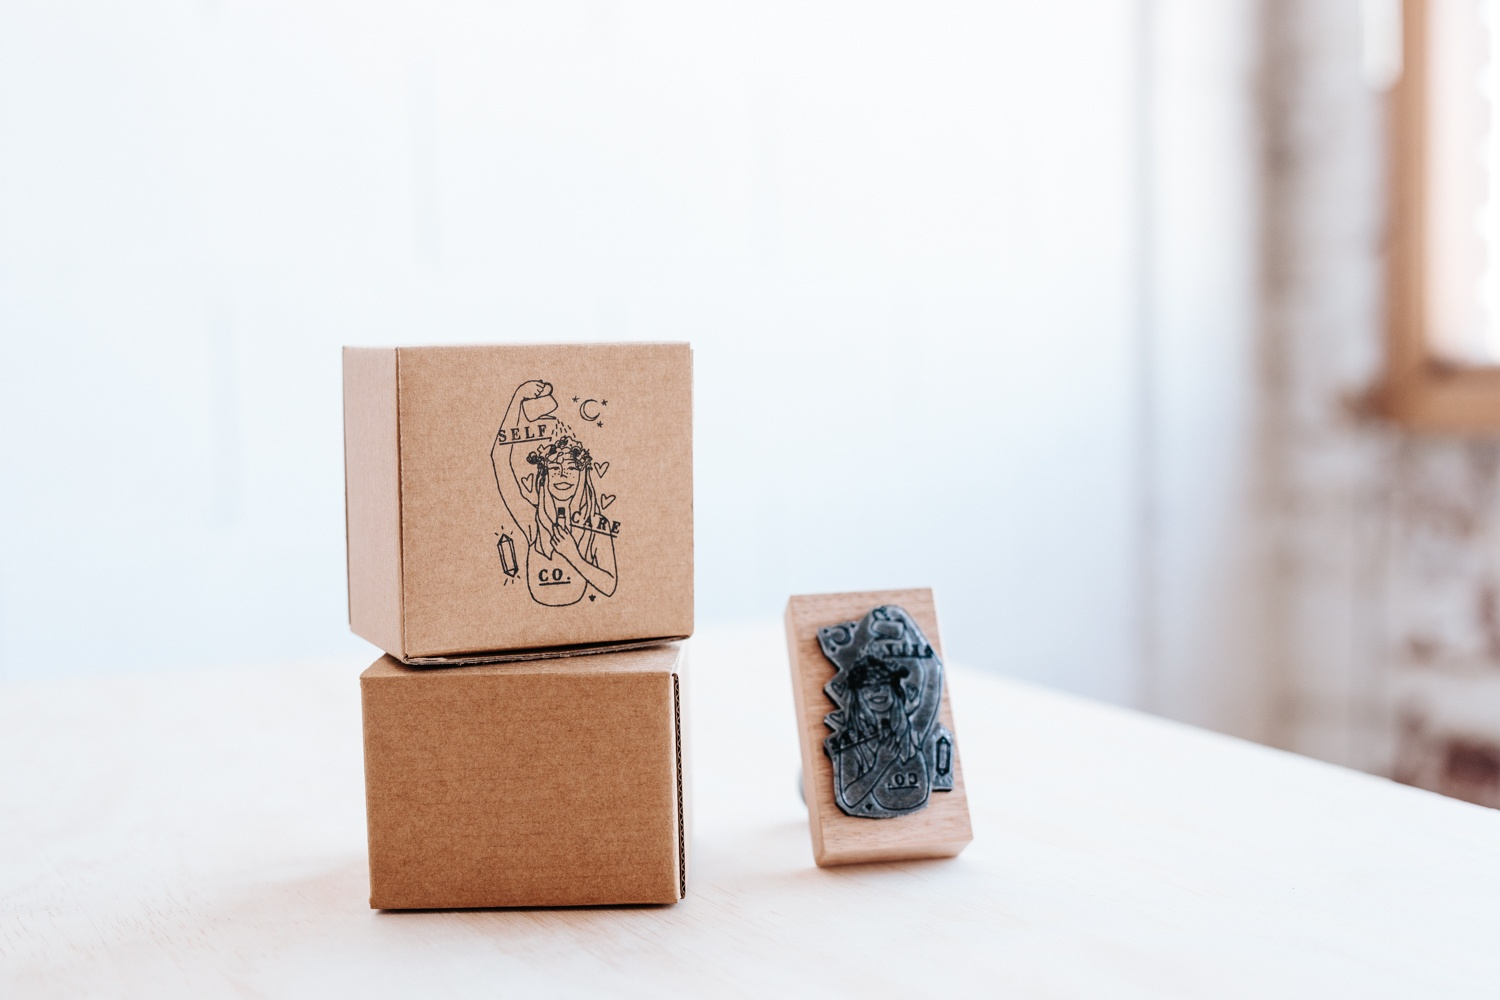 Custom rubber stamps from Woodruff & Co. are a great way to create custom packaging on a budget